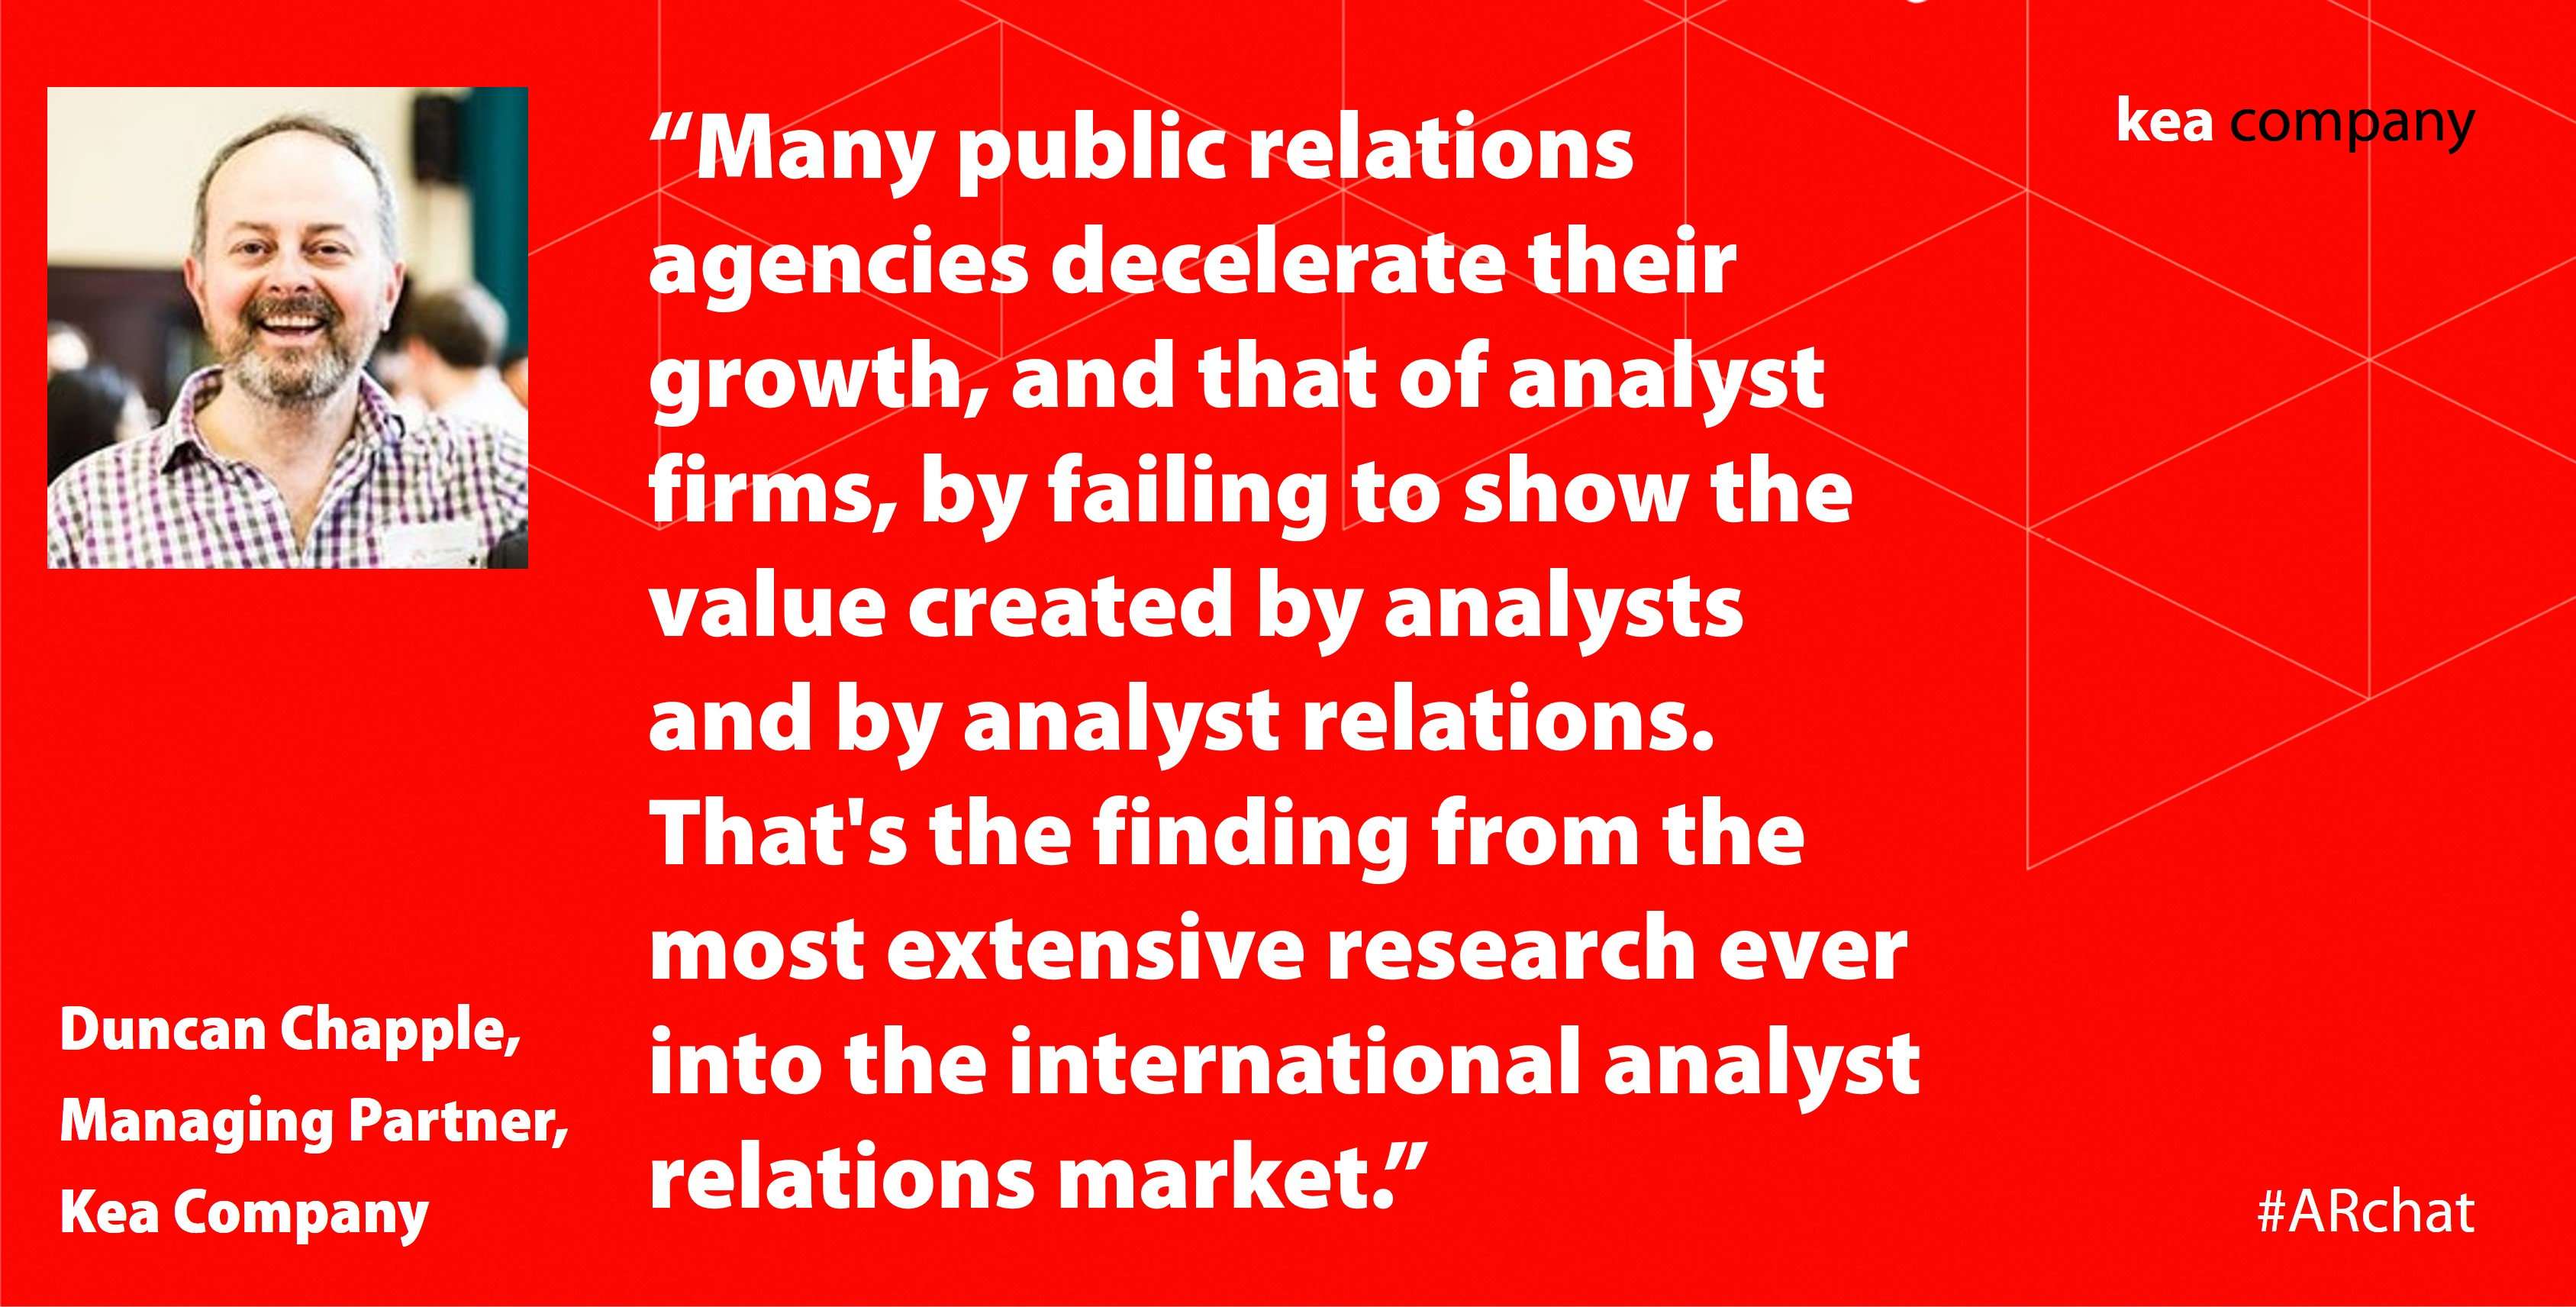 PR agencies can boost analyst relations value